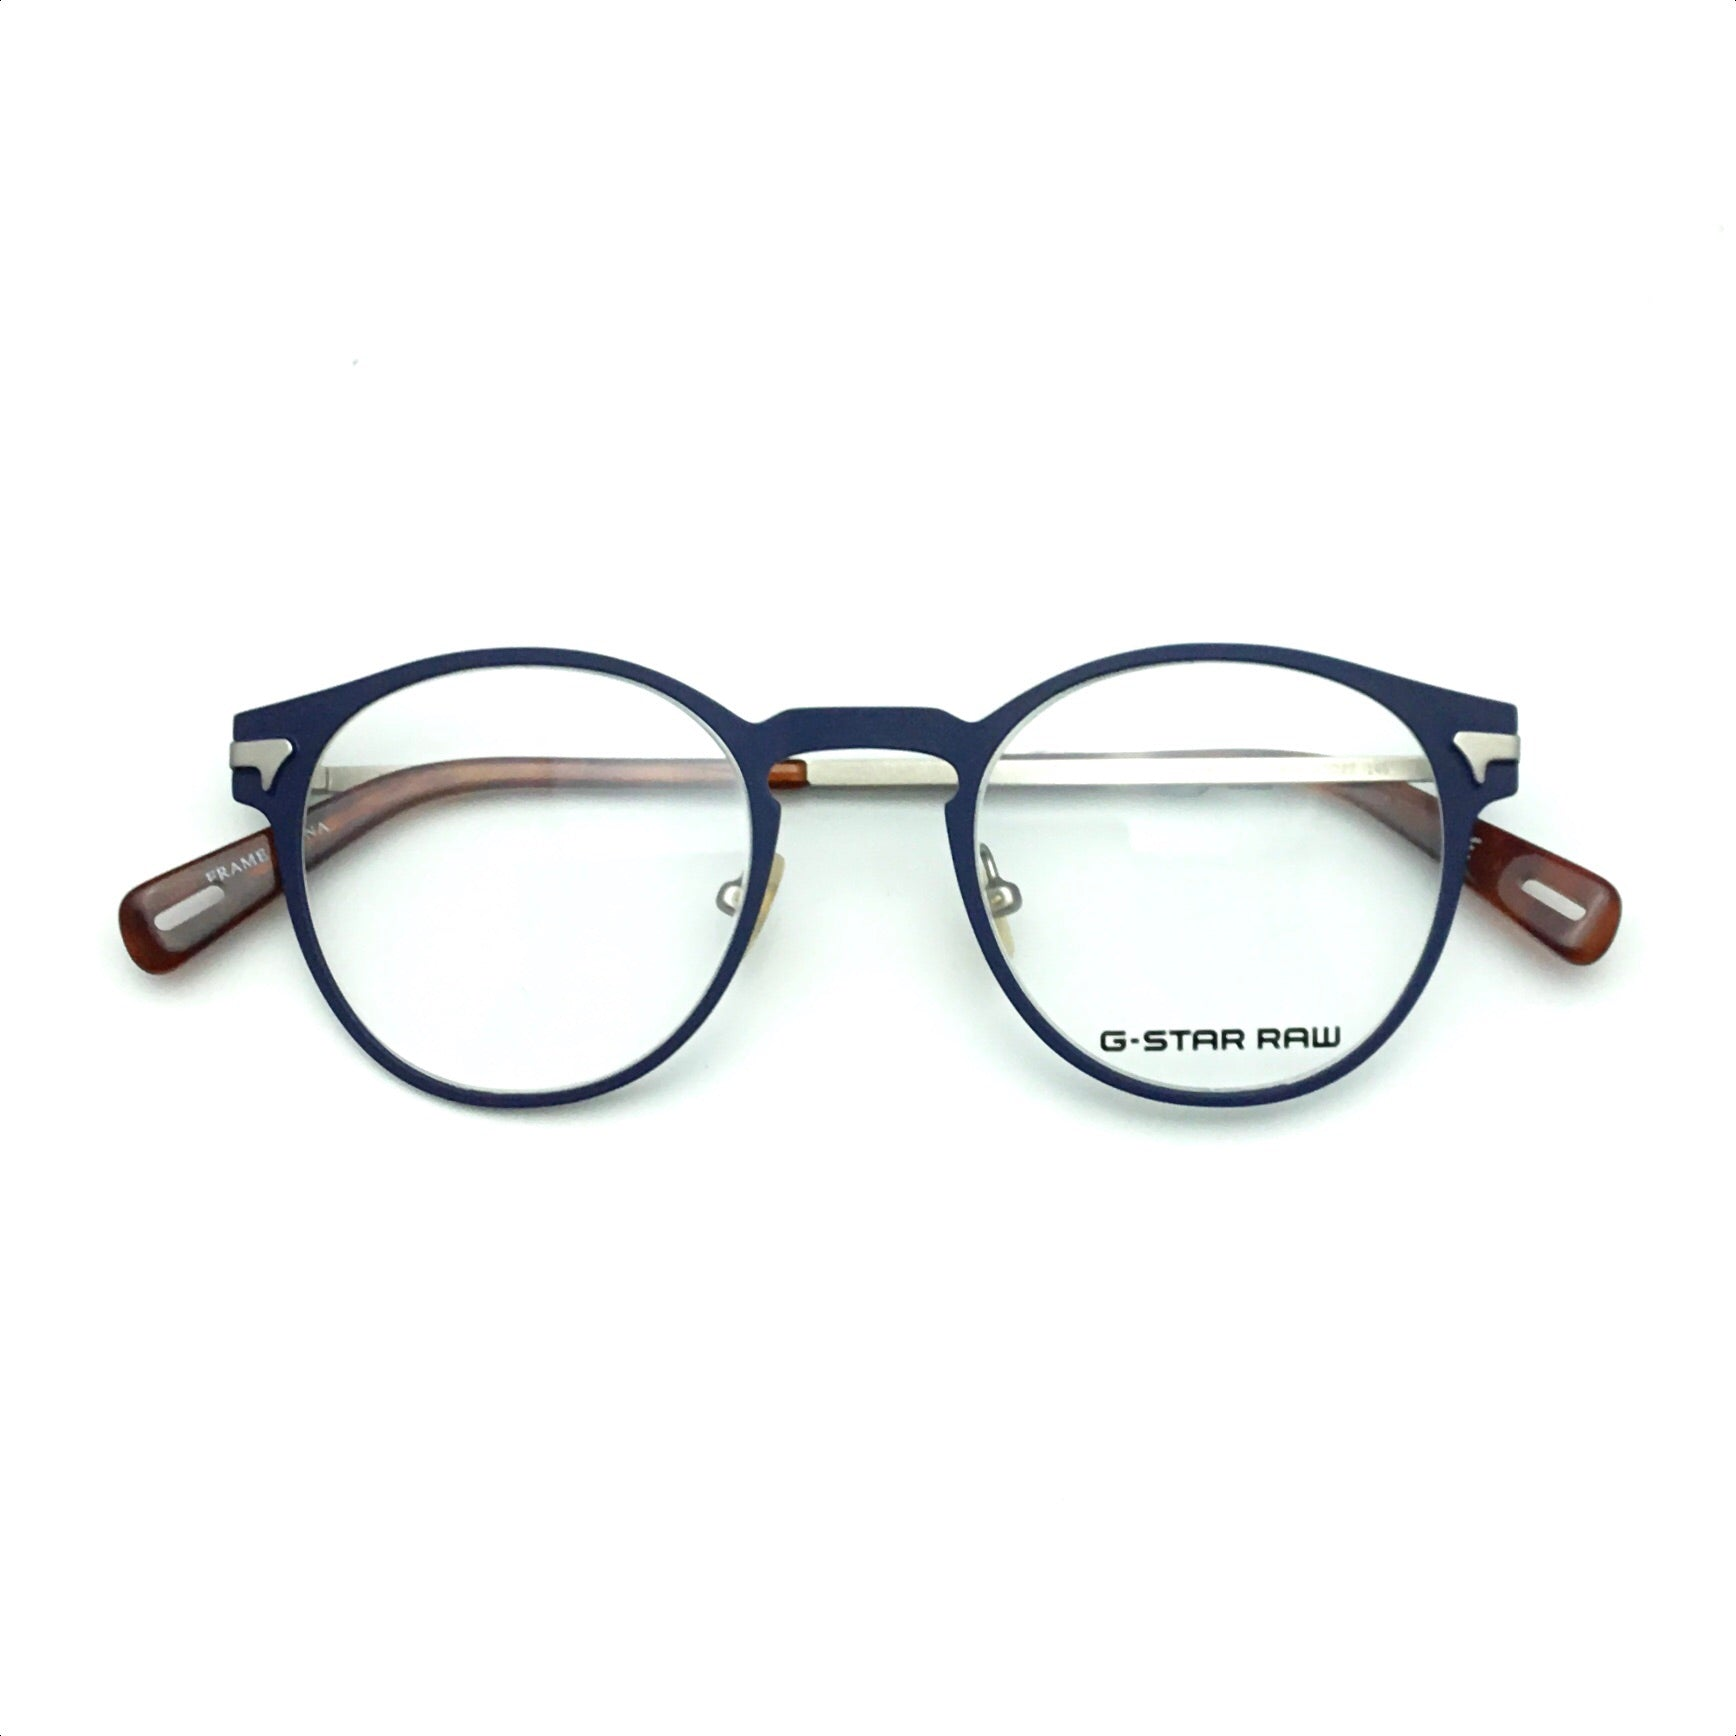 G Star Glasses $119 CIRCULAR G6